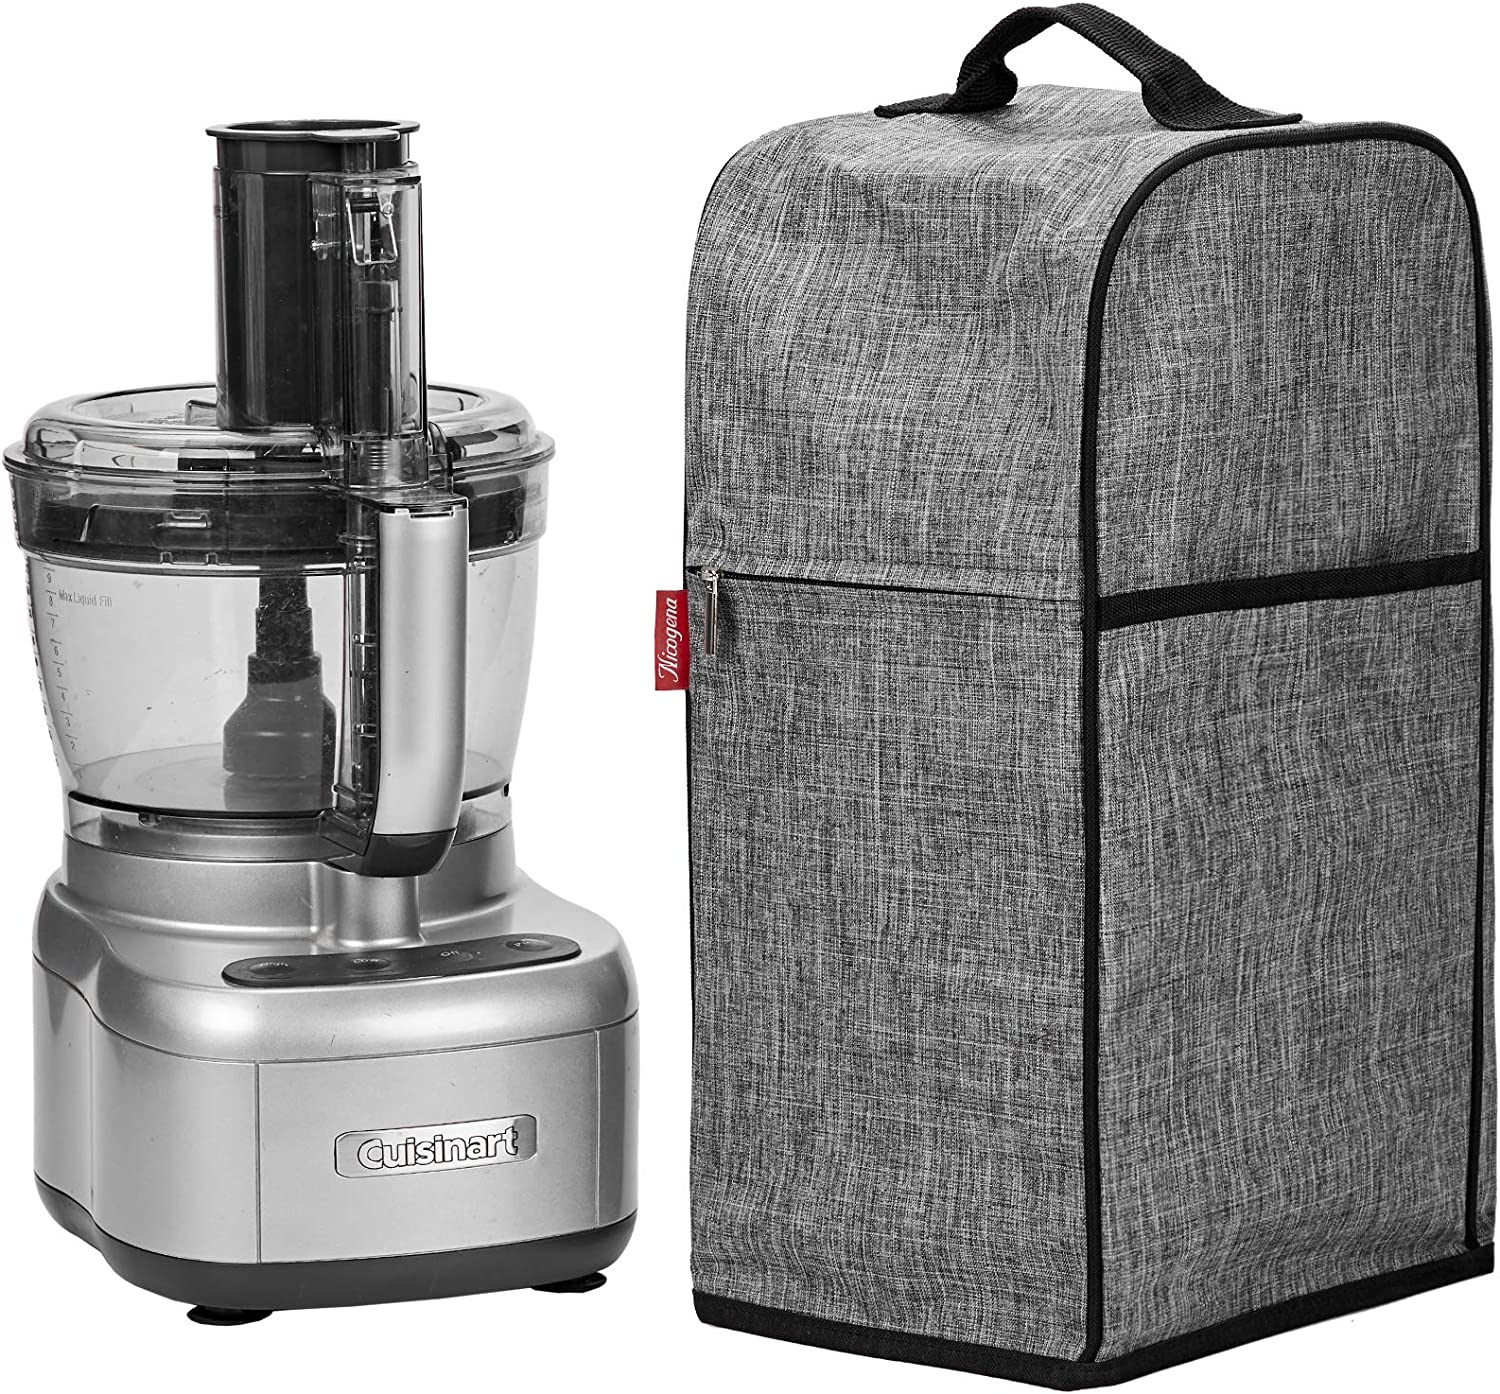 NICOGENA Food Processor Dust Cover with Accessory Pockets Compatible with Cuisinart Custom 8-13 Cup, Grey (Dust Cover Only)